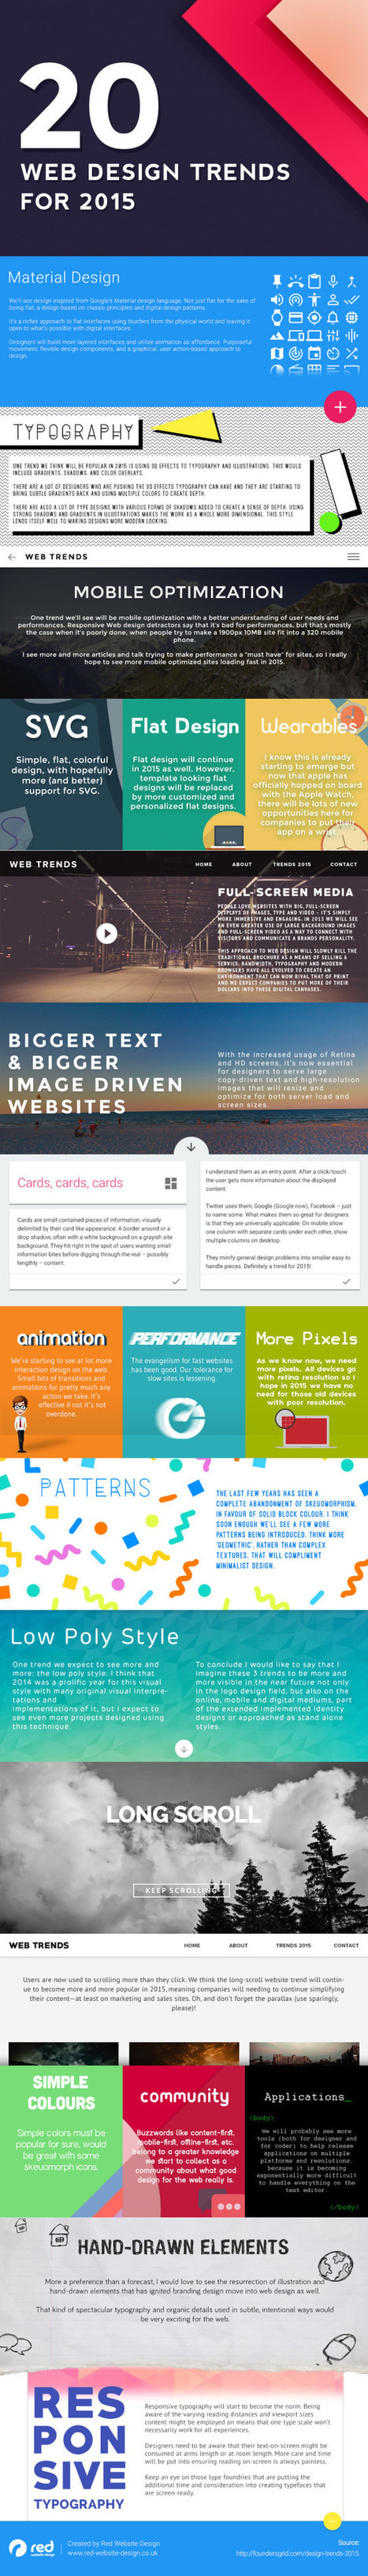 20 Web Design Trends for 2015 #infographic | WebsiteDesign | Scoop.it